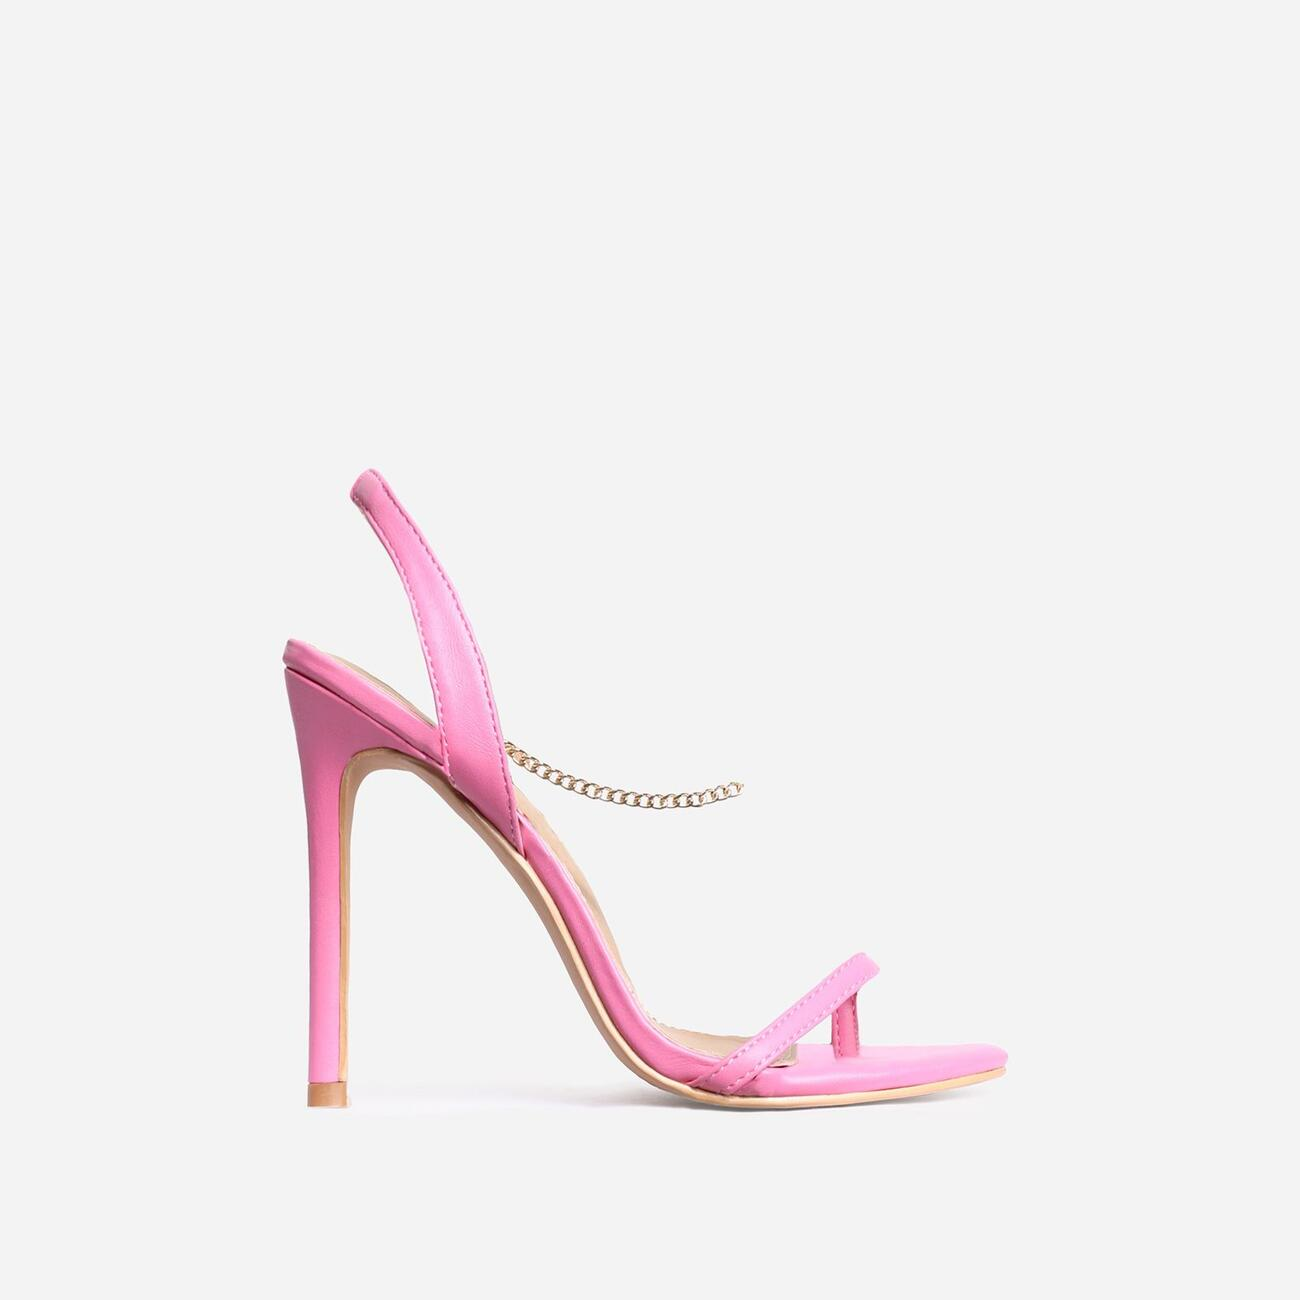 Peachy Chain Detail Sling Back Heel In Pink Faux Leather Image 1